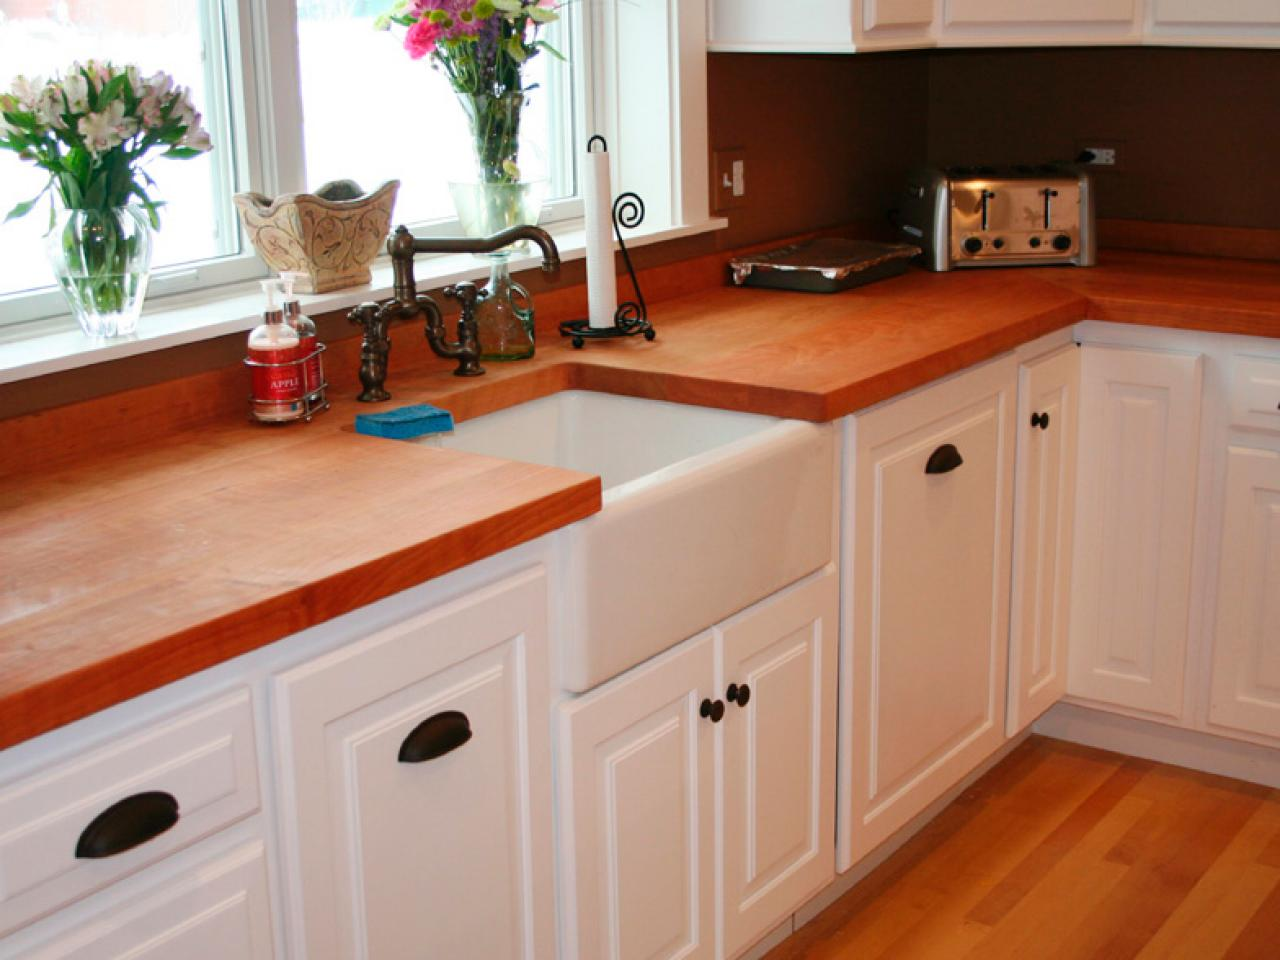 Kitchen Cabinets Handles Or Knobs kitchen cabinet pulls: pictures, options, tips & ideas | hgtv